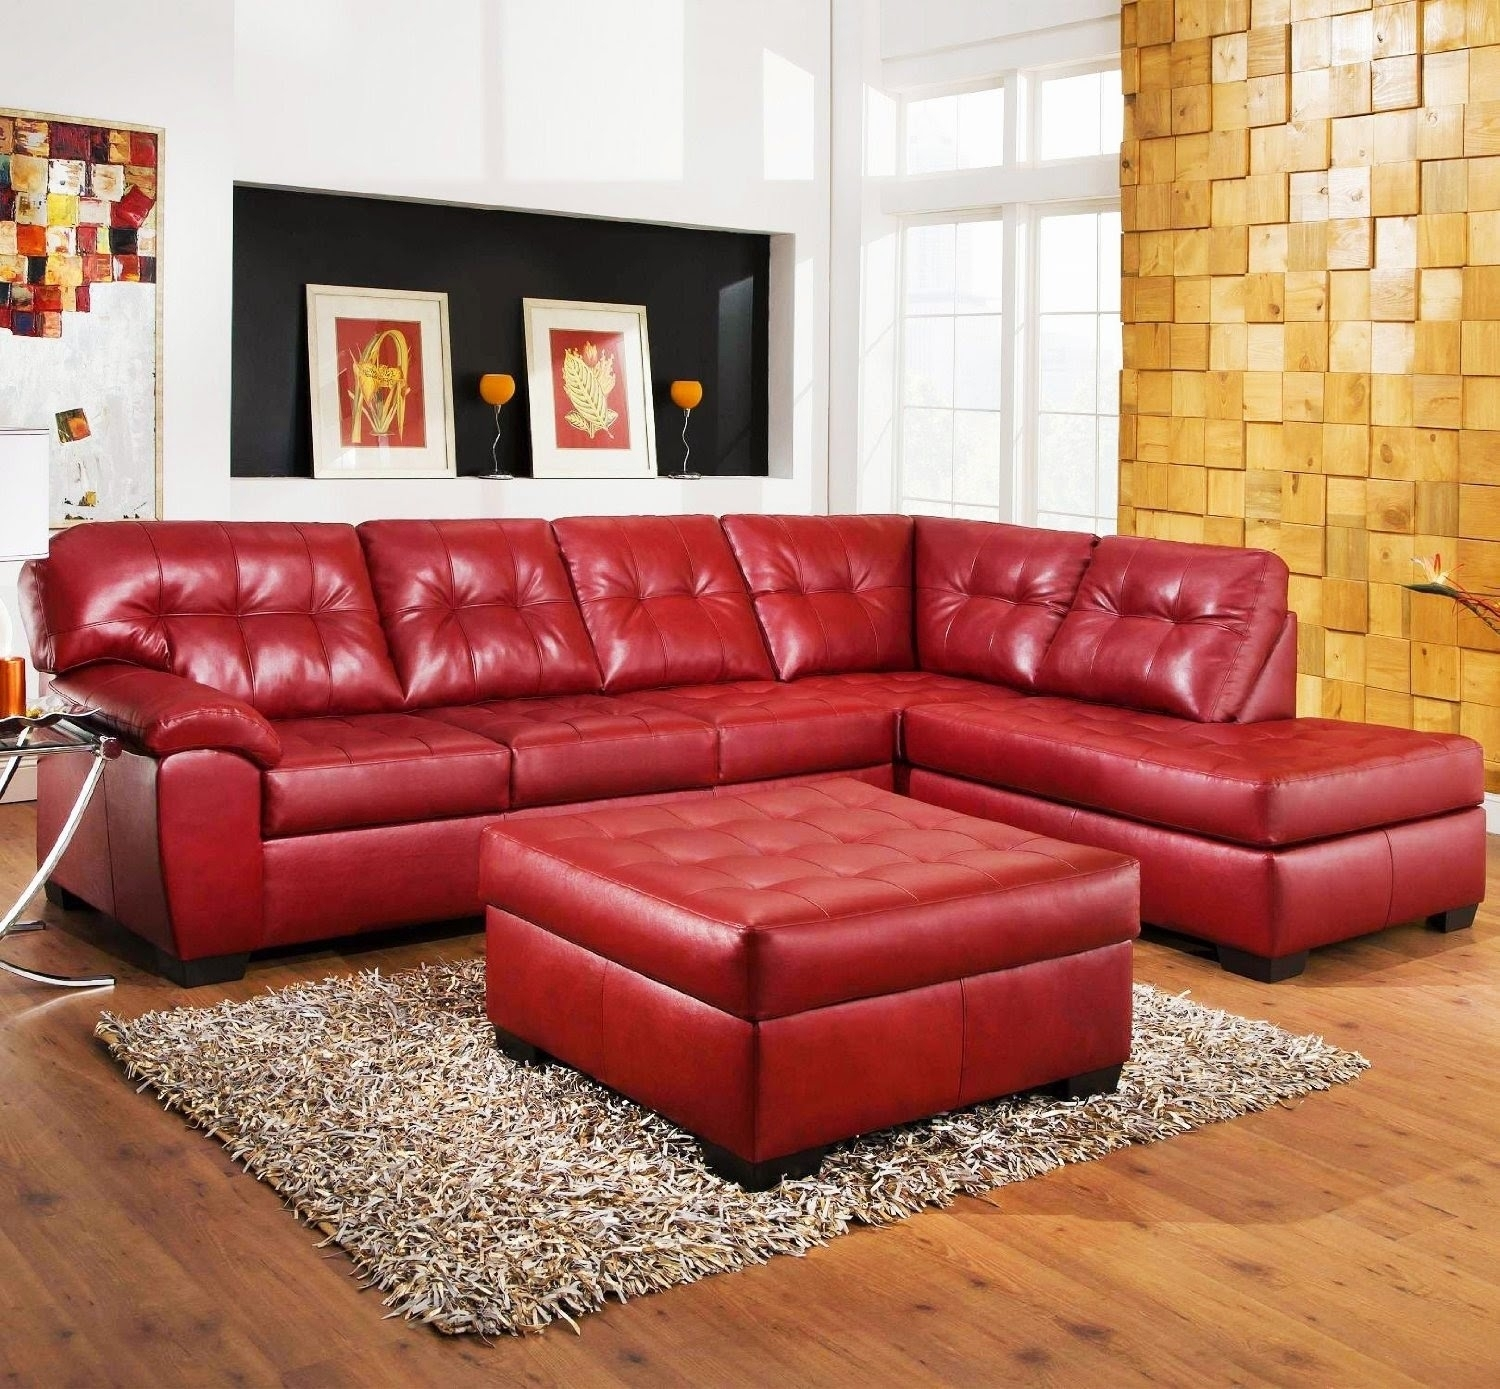 Red Faux Leather Sectional Sofa • Sectional Sofa Pertaining To Red Faux Leather Sectionals (View 4 of 10)